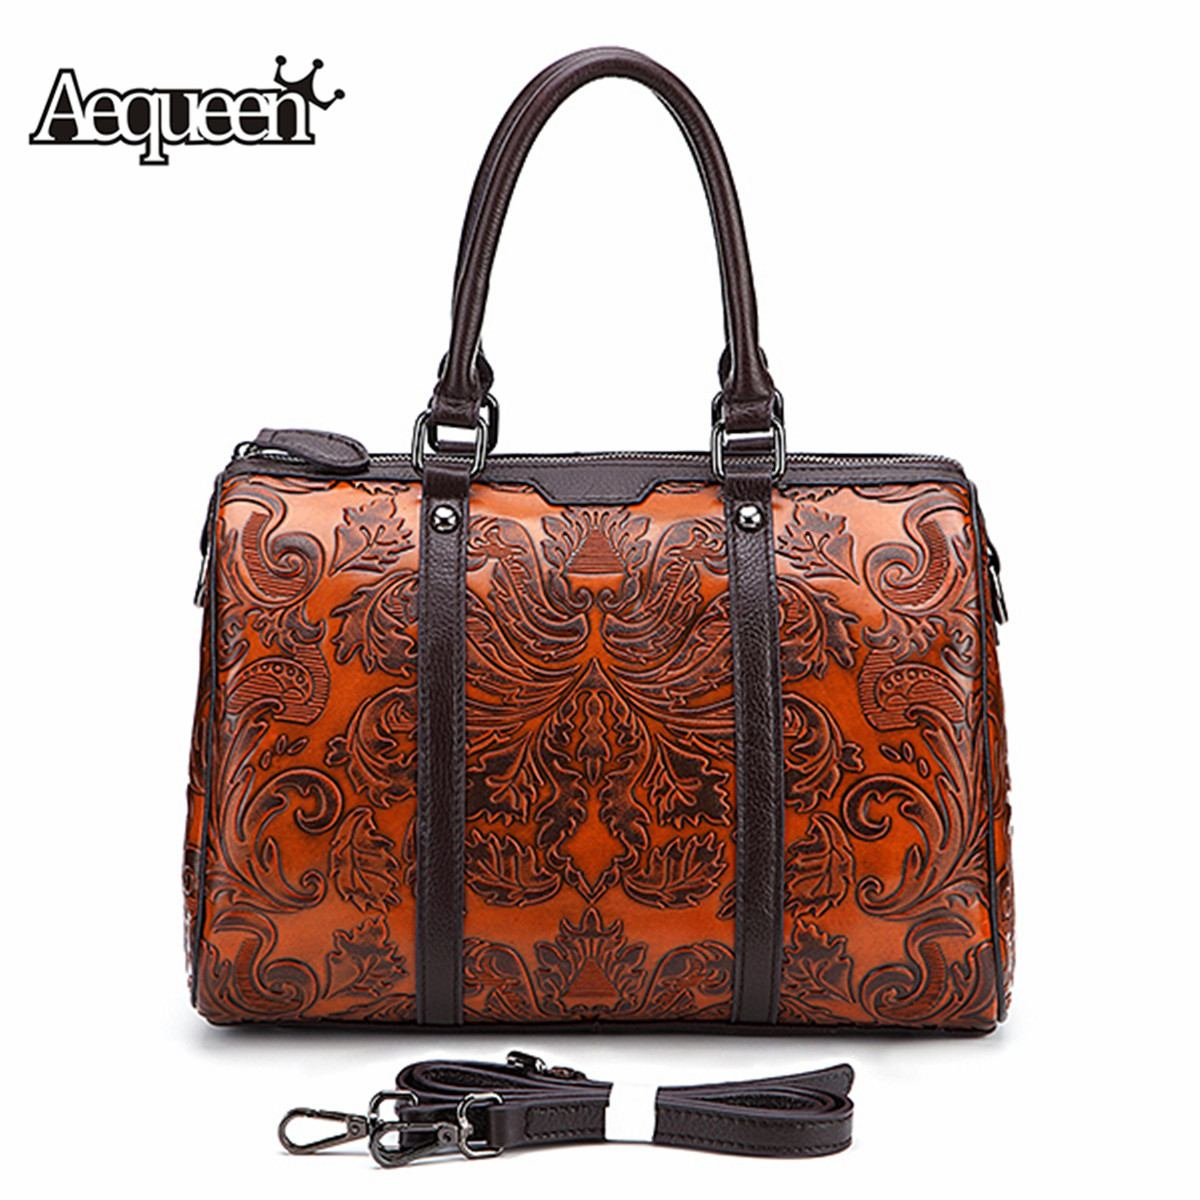 AEQUEEN Luxury Hand Bag Designer Genuine Leather Women Handbag Female Vintage Embossed Craft Shoulder Crossbody Bag